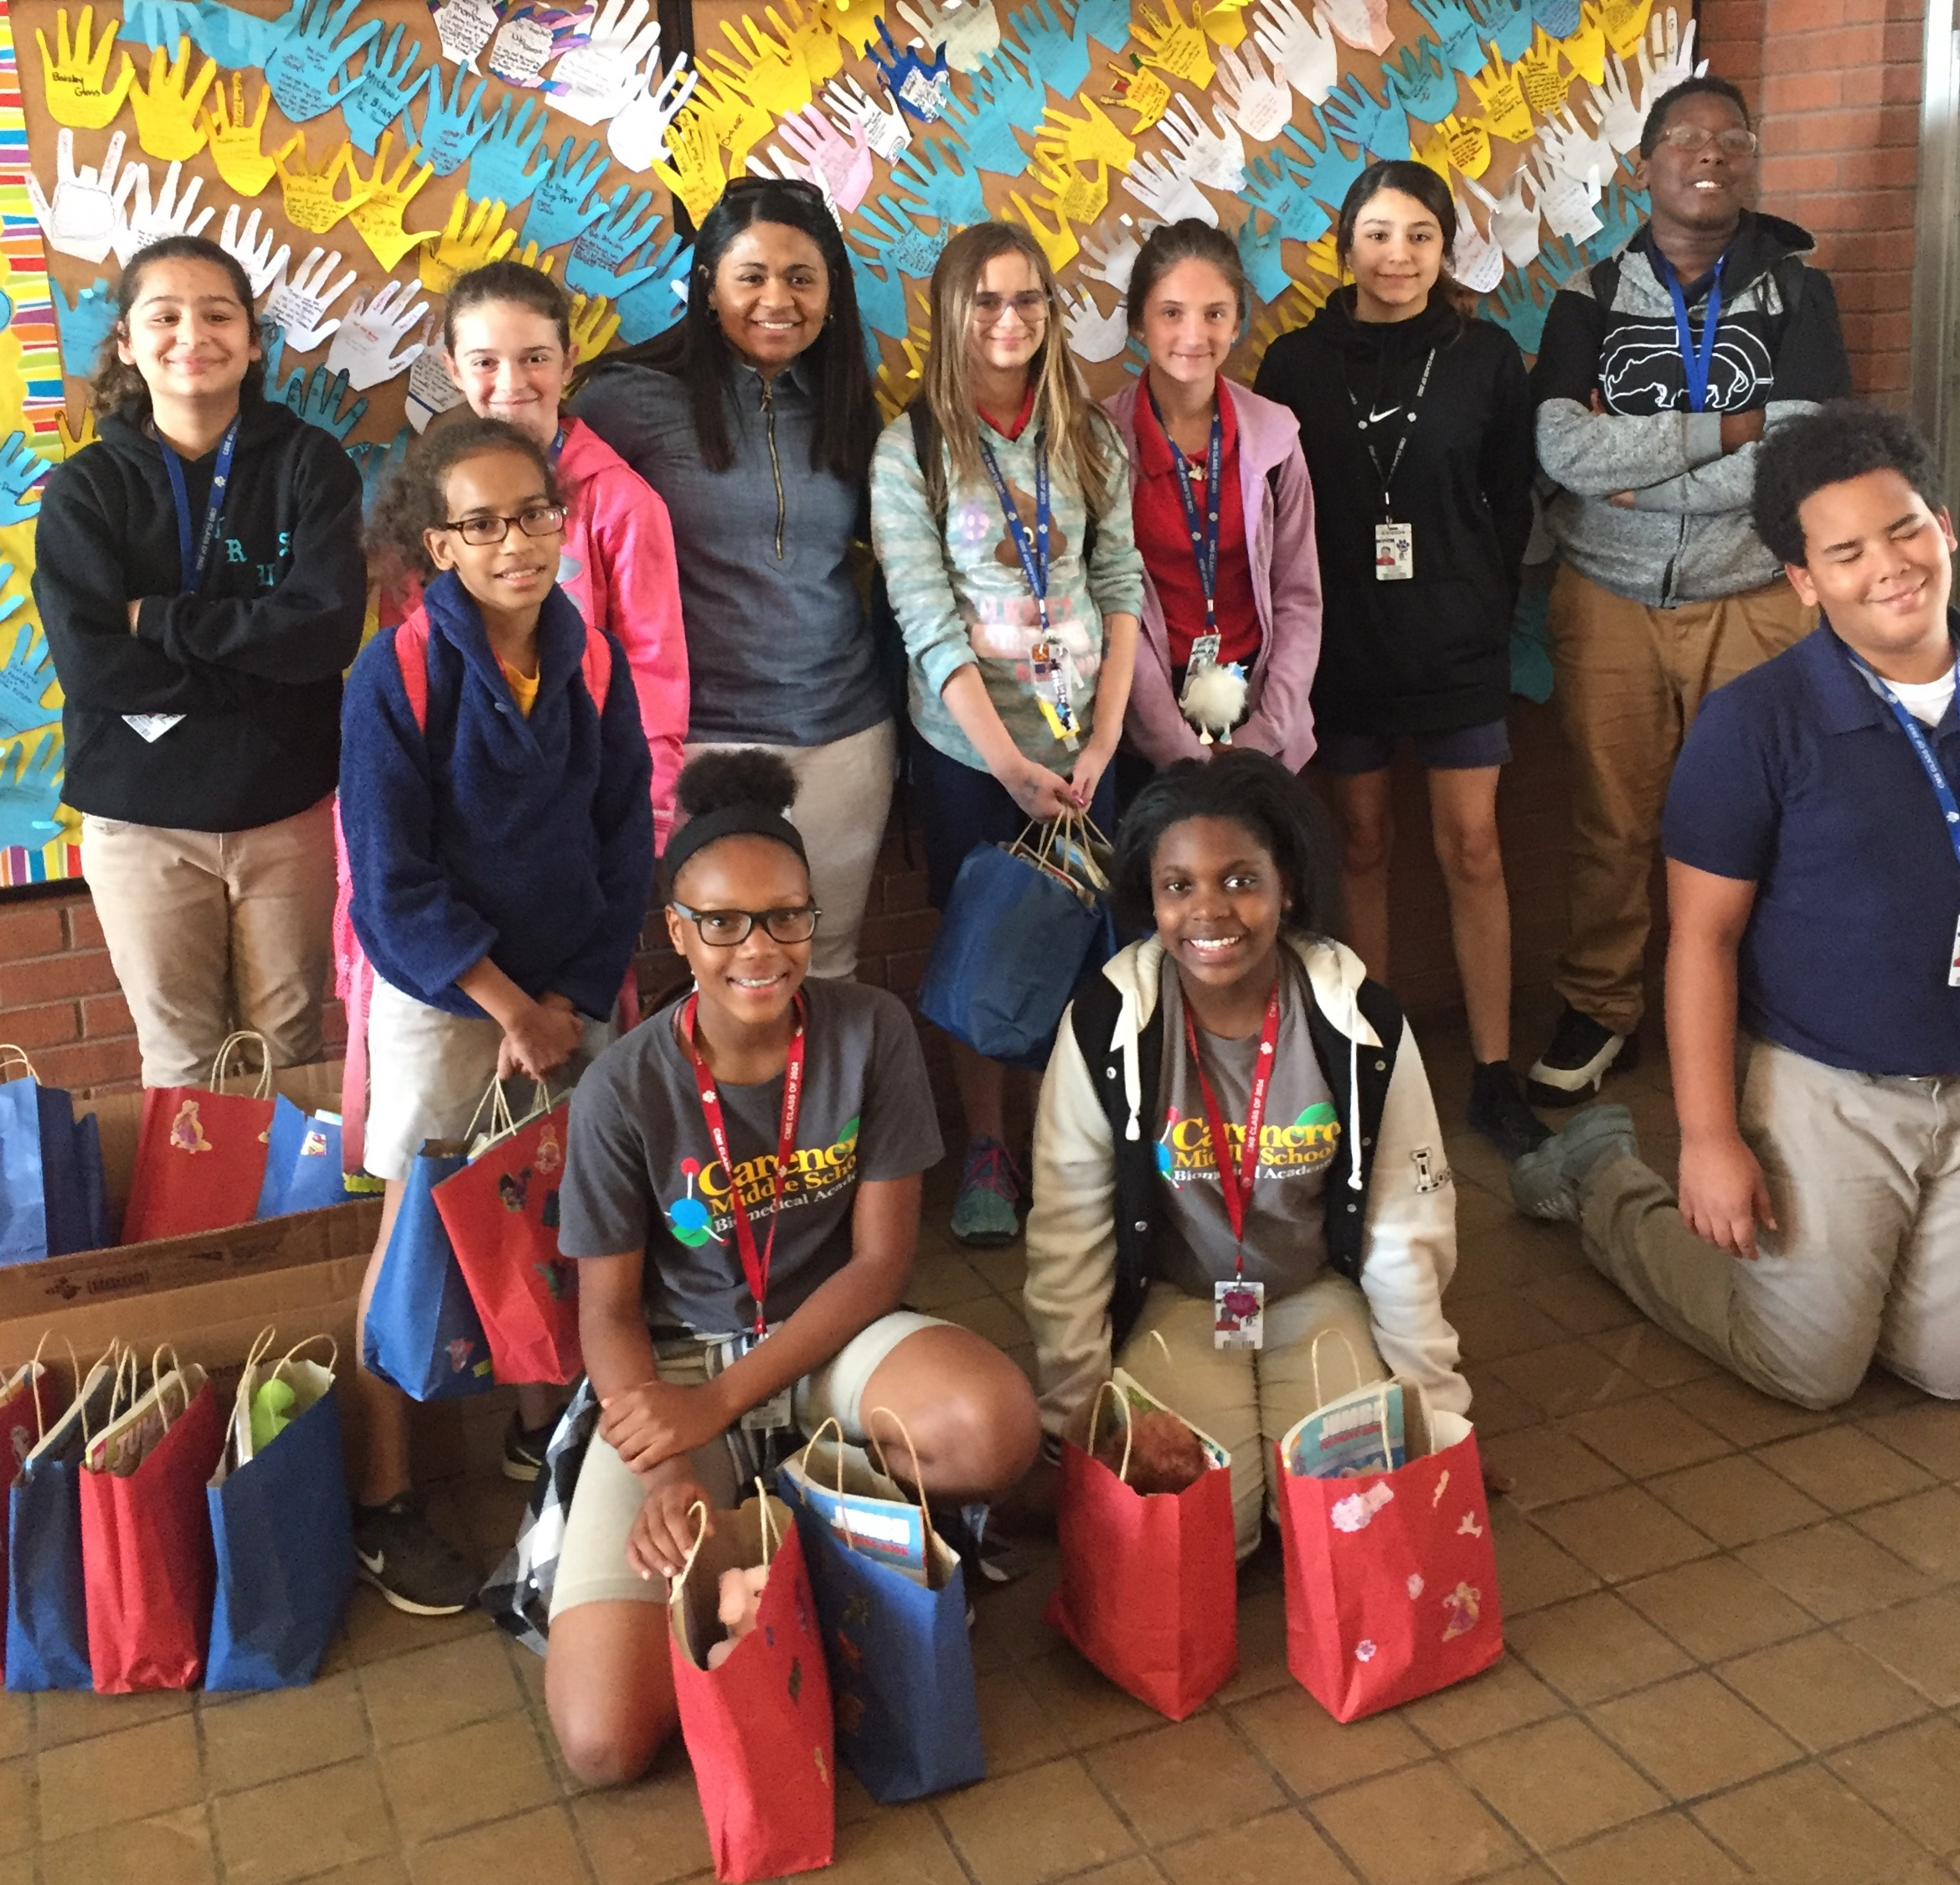 Val Senegal with Carencro Middle students who donate Easter bags to CAC clients